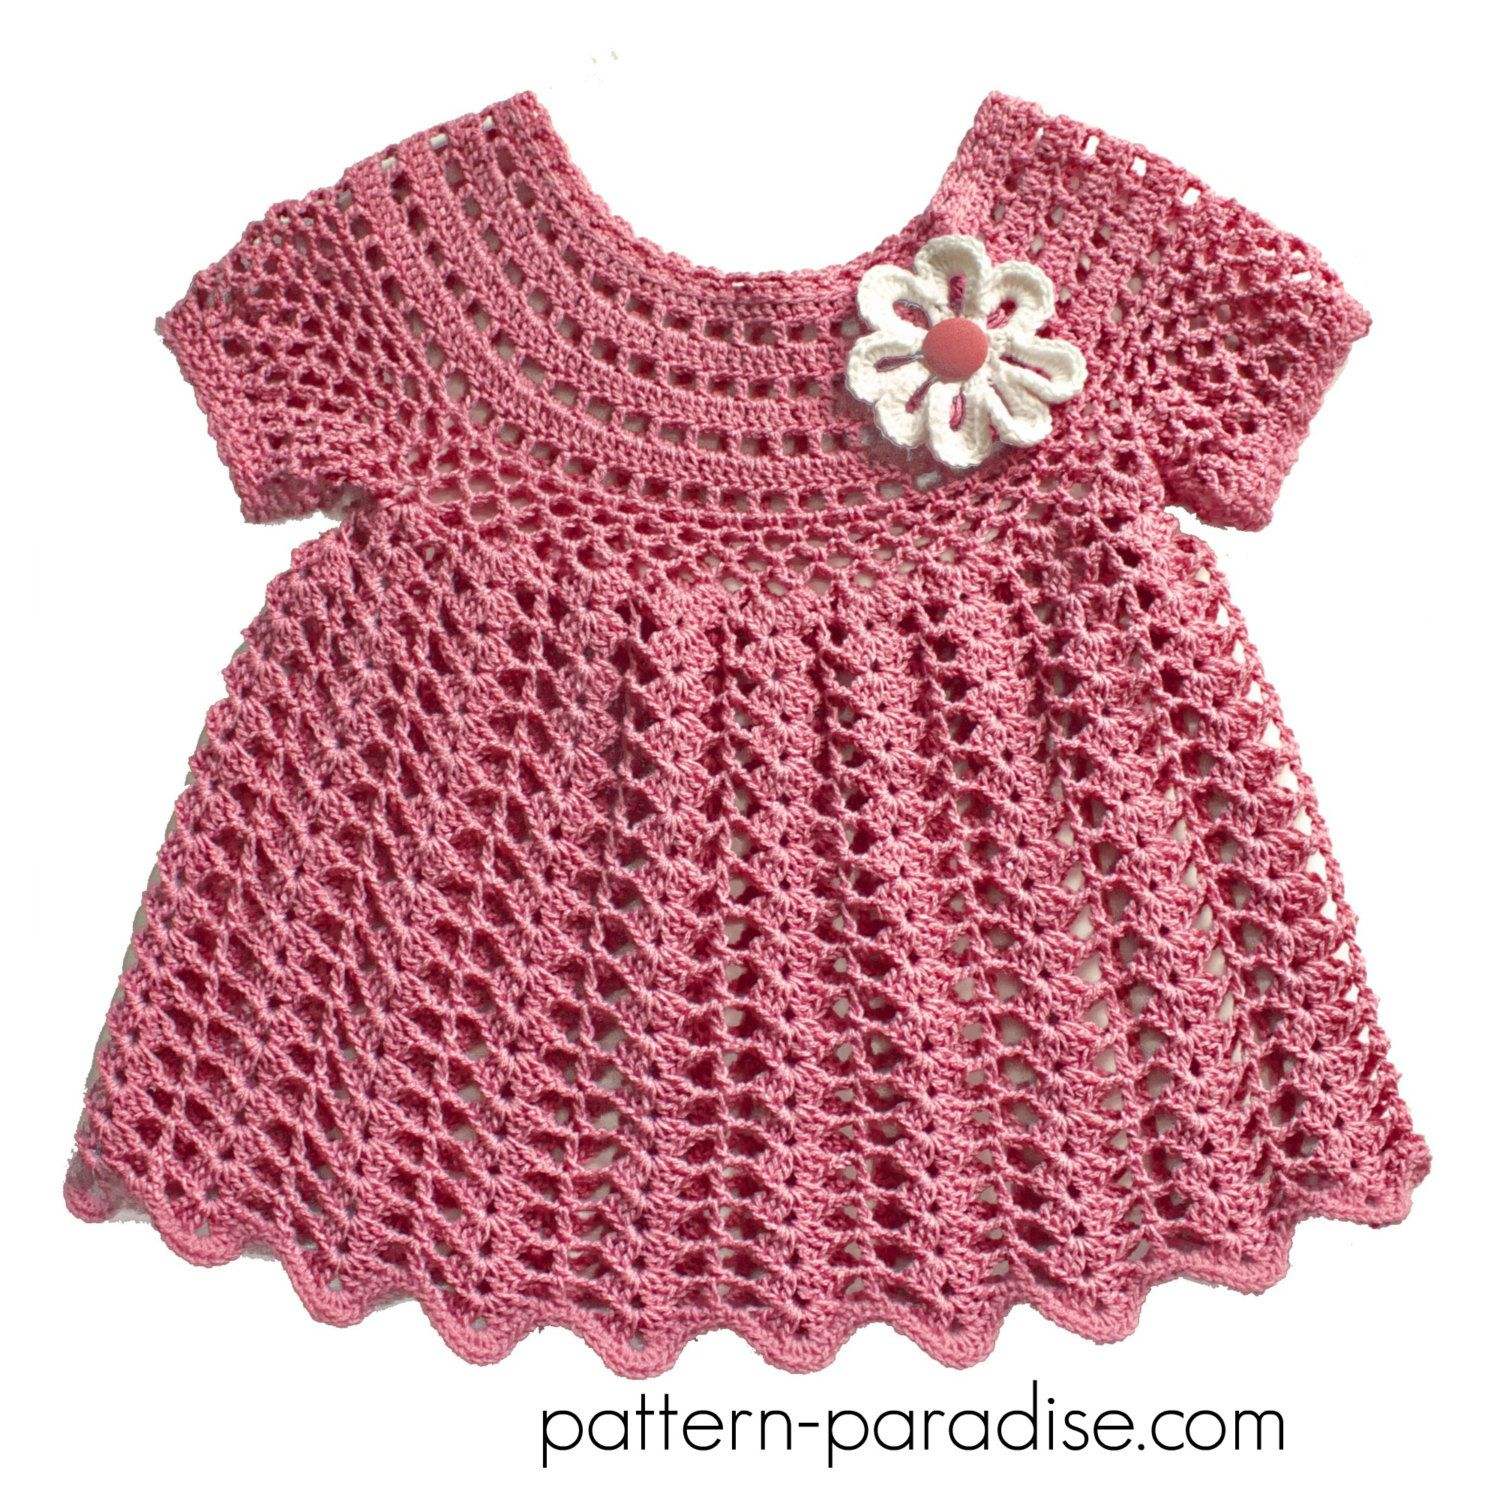 Crochet Pattern for Baby Toddler Dress Tunic, Peaches and Cream, PDF ...